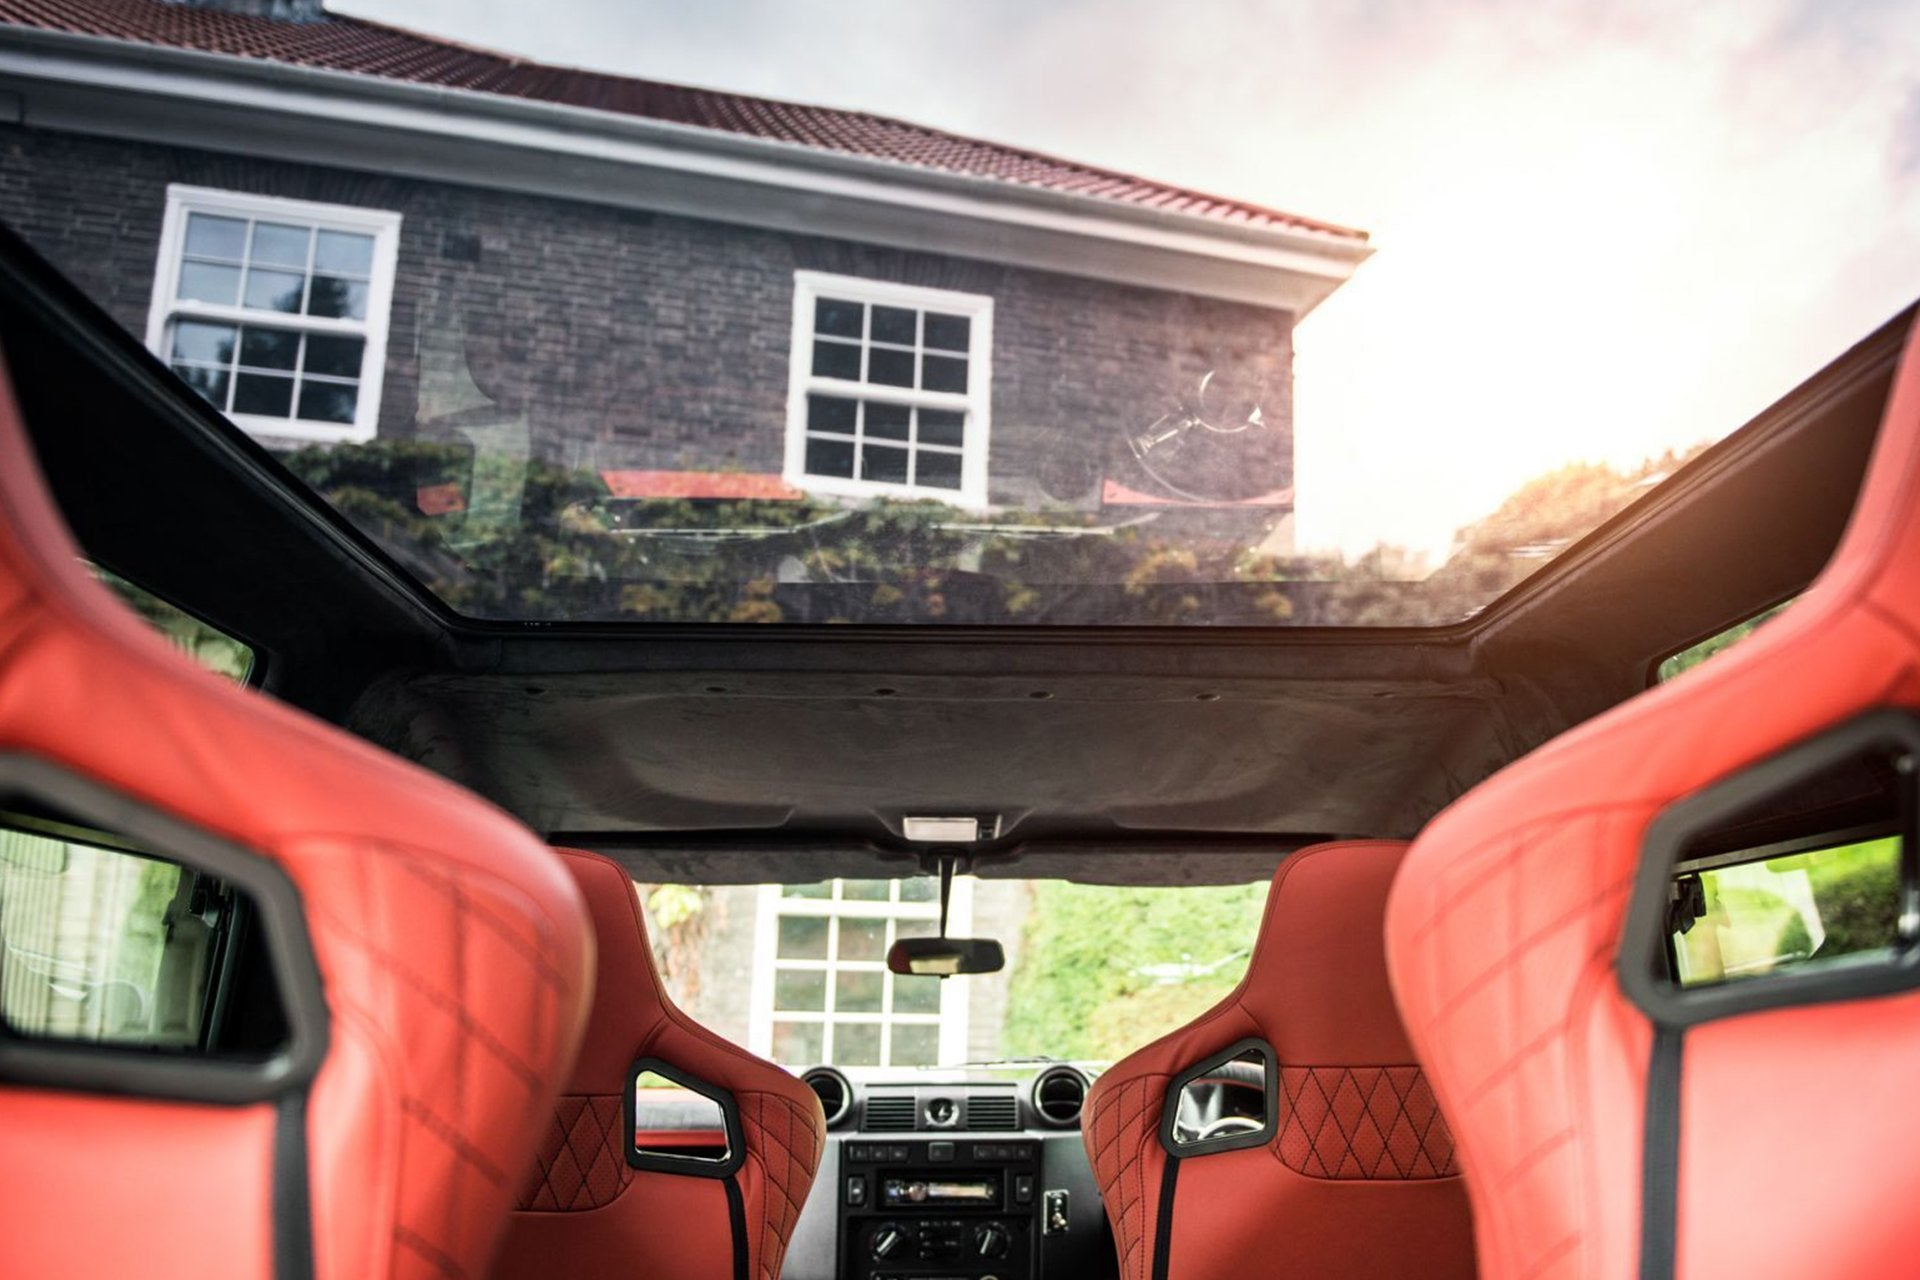 Land Rover Defender 90 (1991-2016) Panoramic Roof